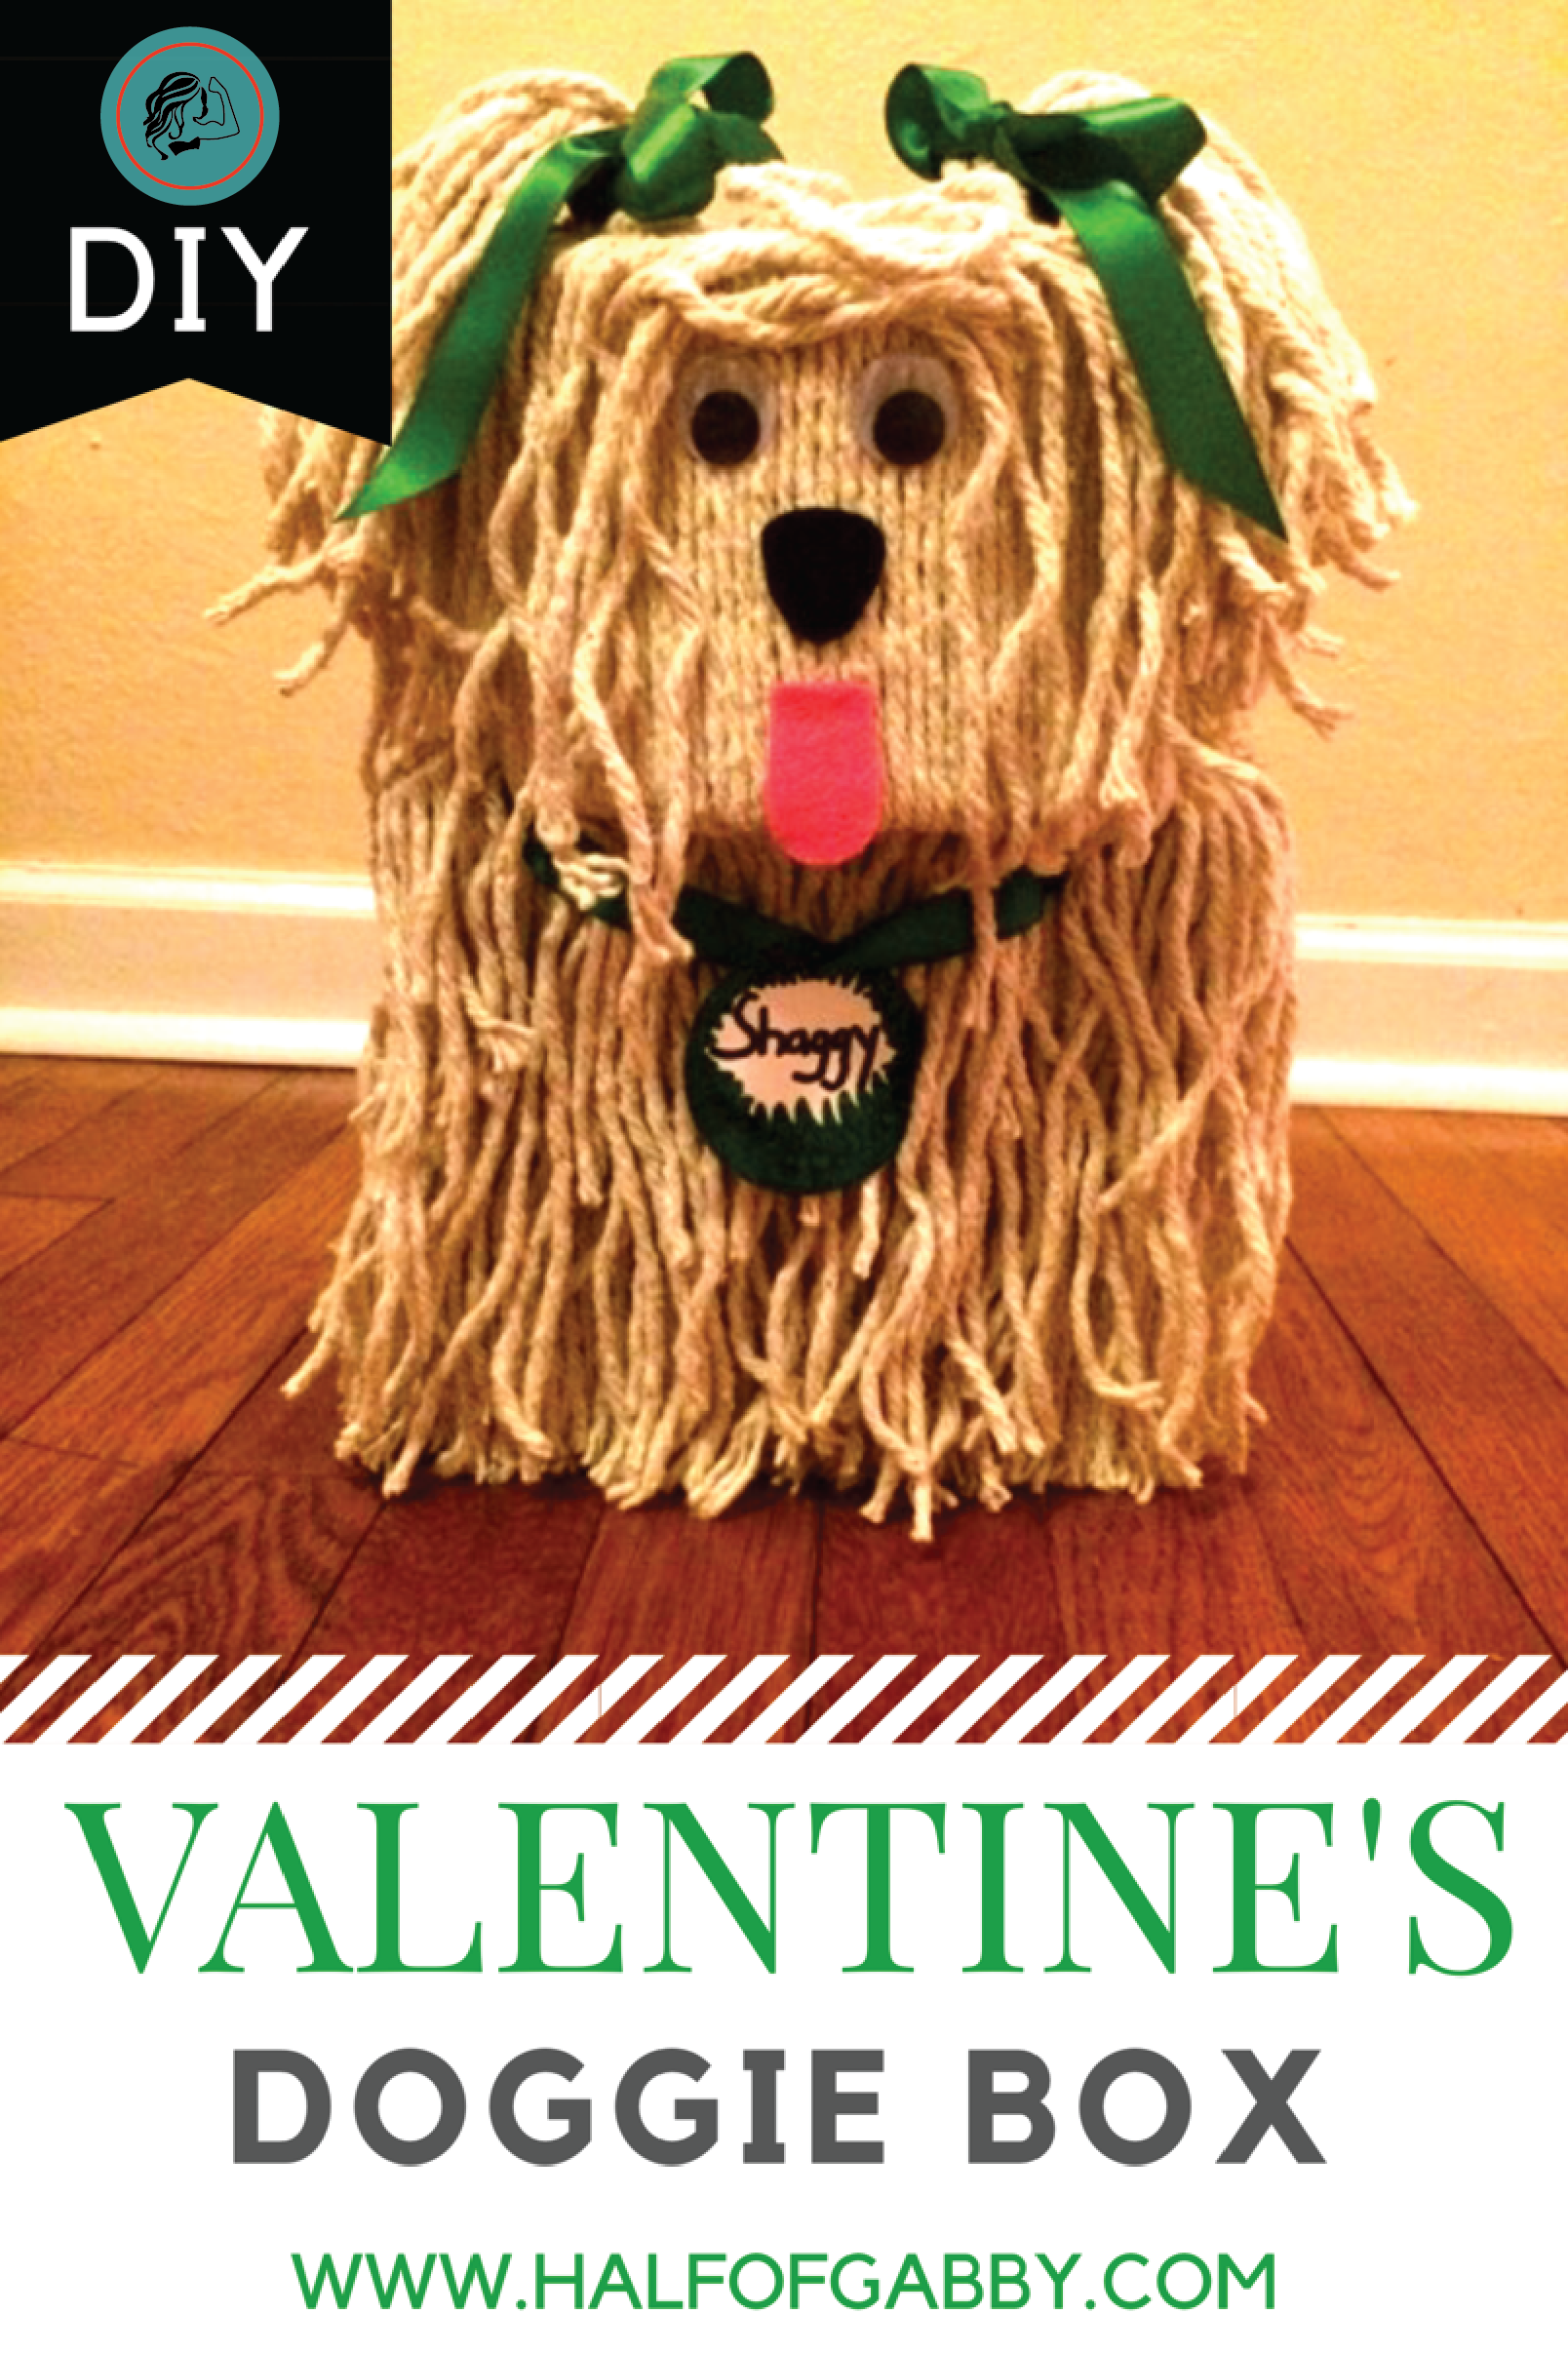 DOGGIE VALENTINE BOX: Printable Instructions Included! — Half of Gabby